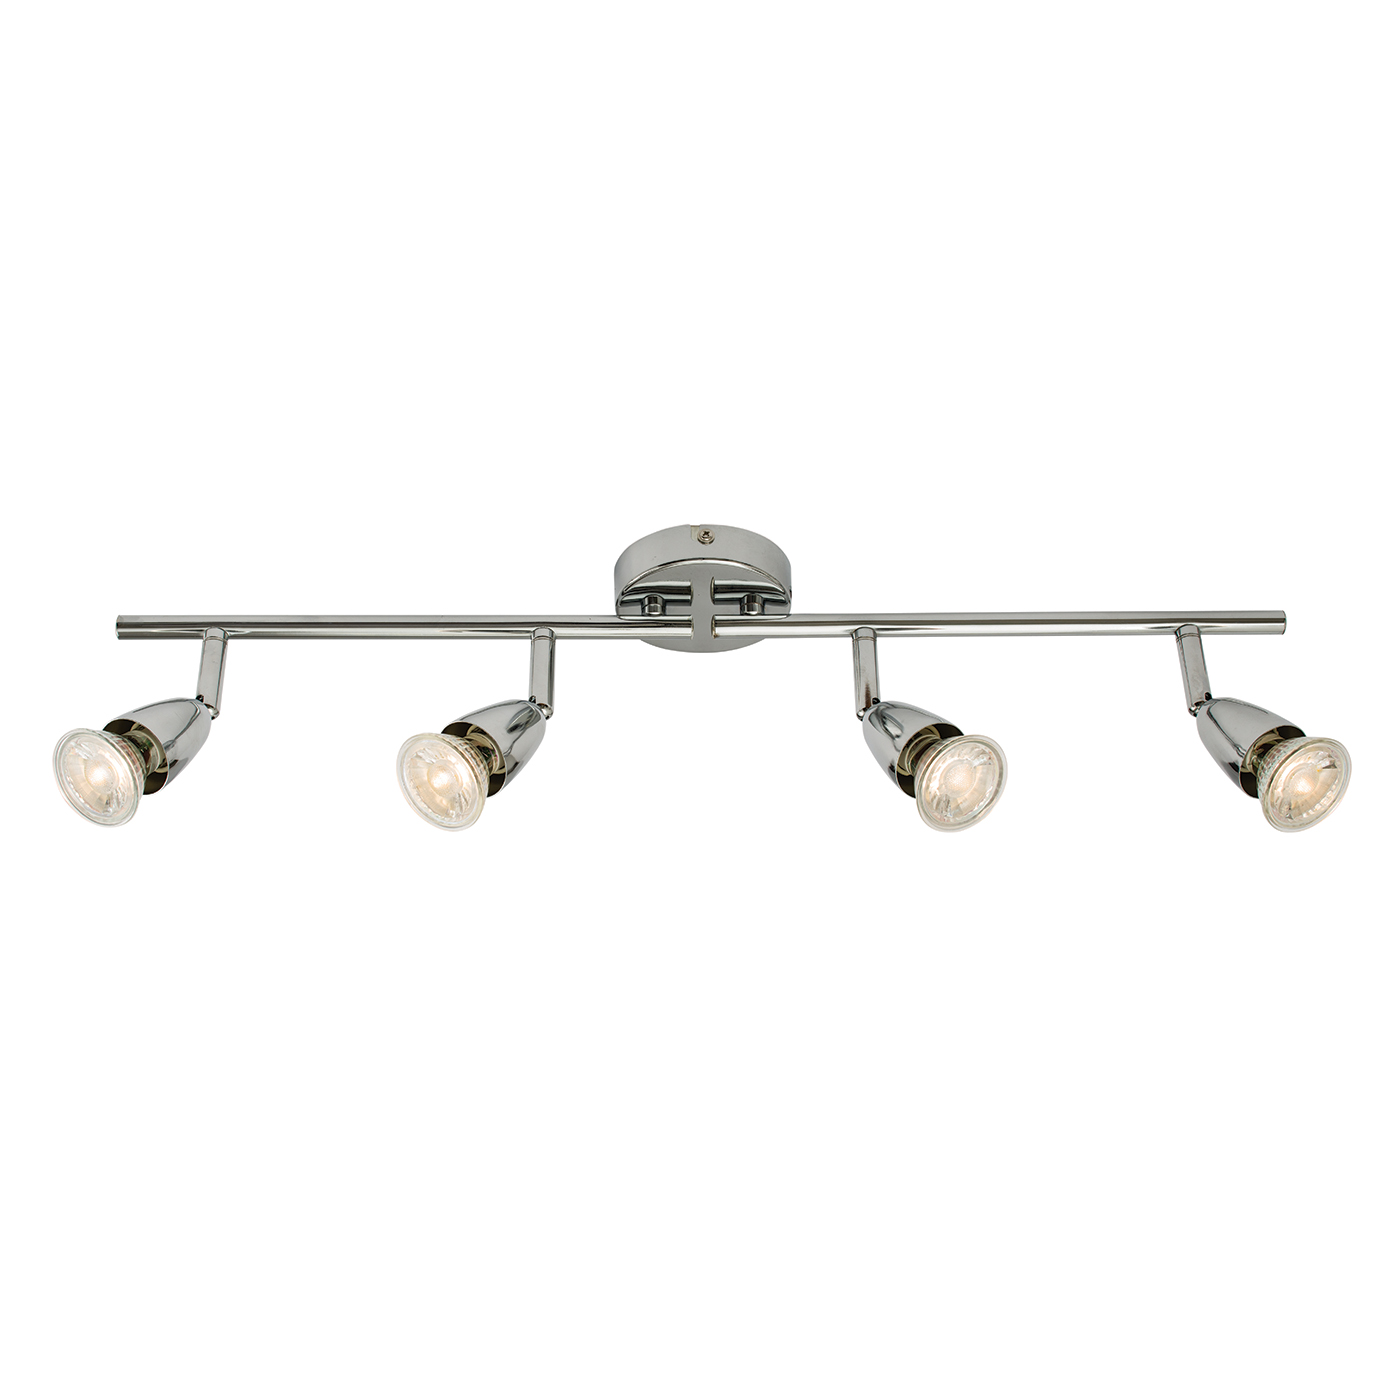 Endon Amalfi ceiling spotlight bar 4x 50W Chrome effect plate